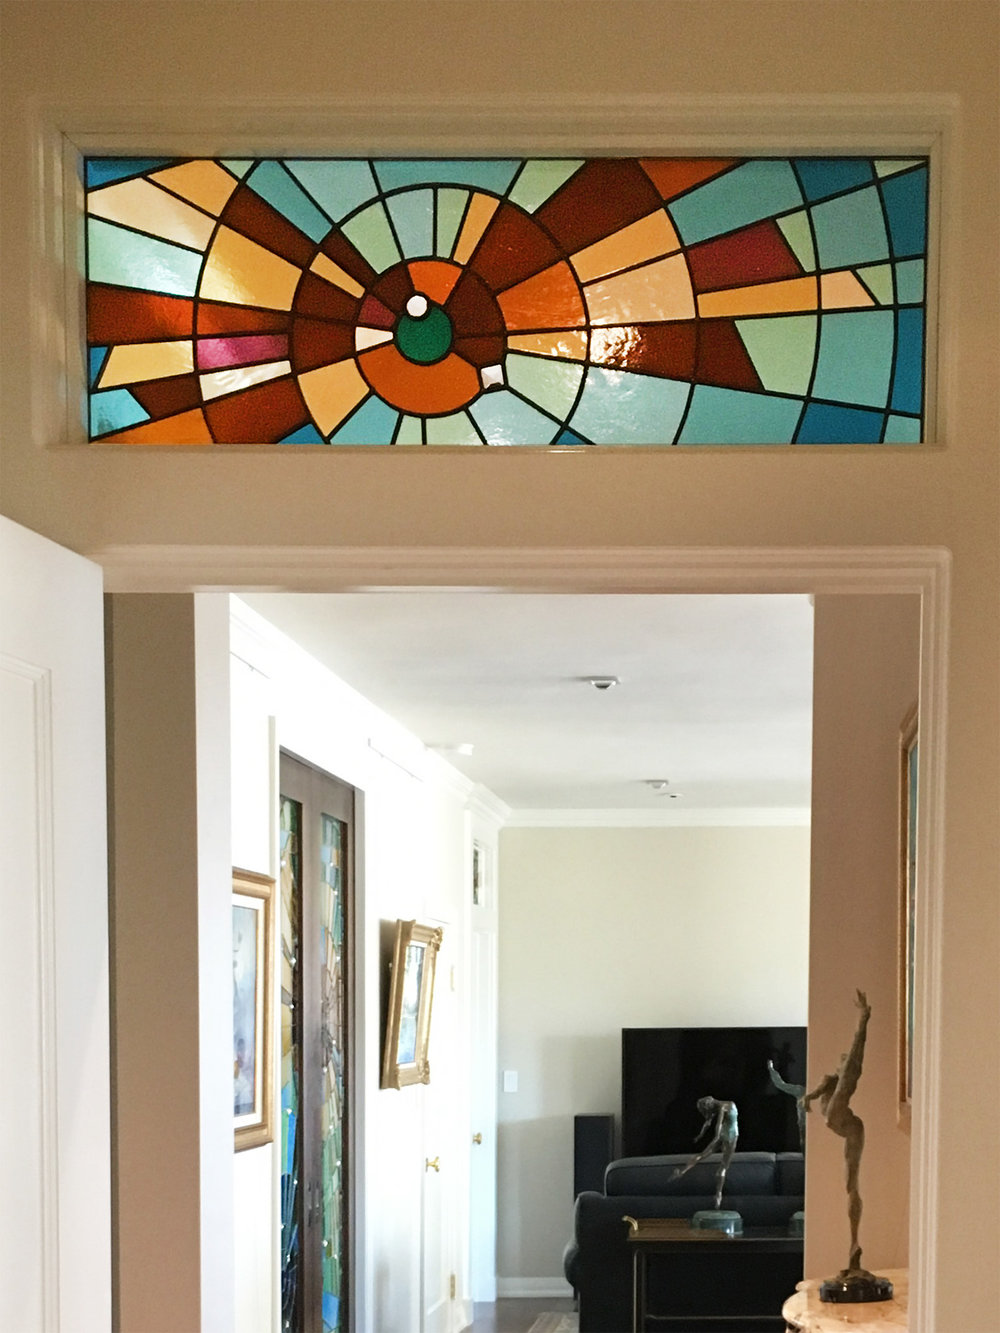 abstract stained glass bird flight wings palo alto atherton menlo park san jose san francisco bay area legacy glass.jpg